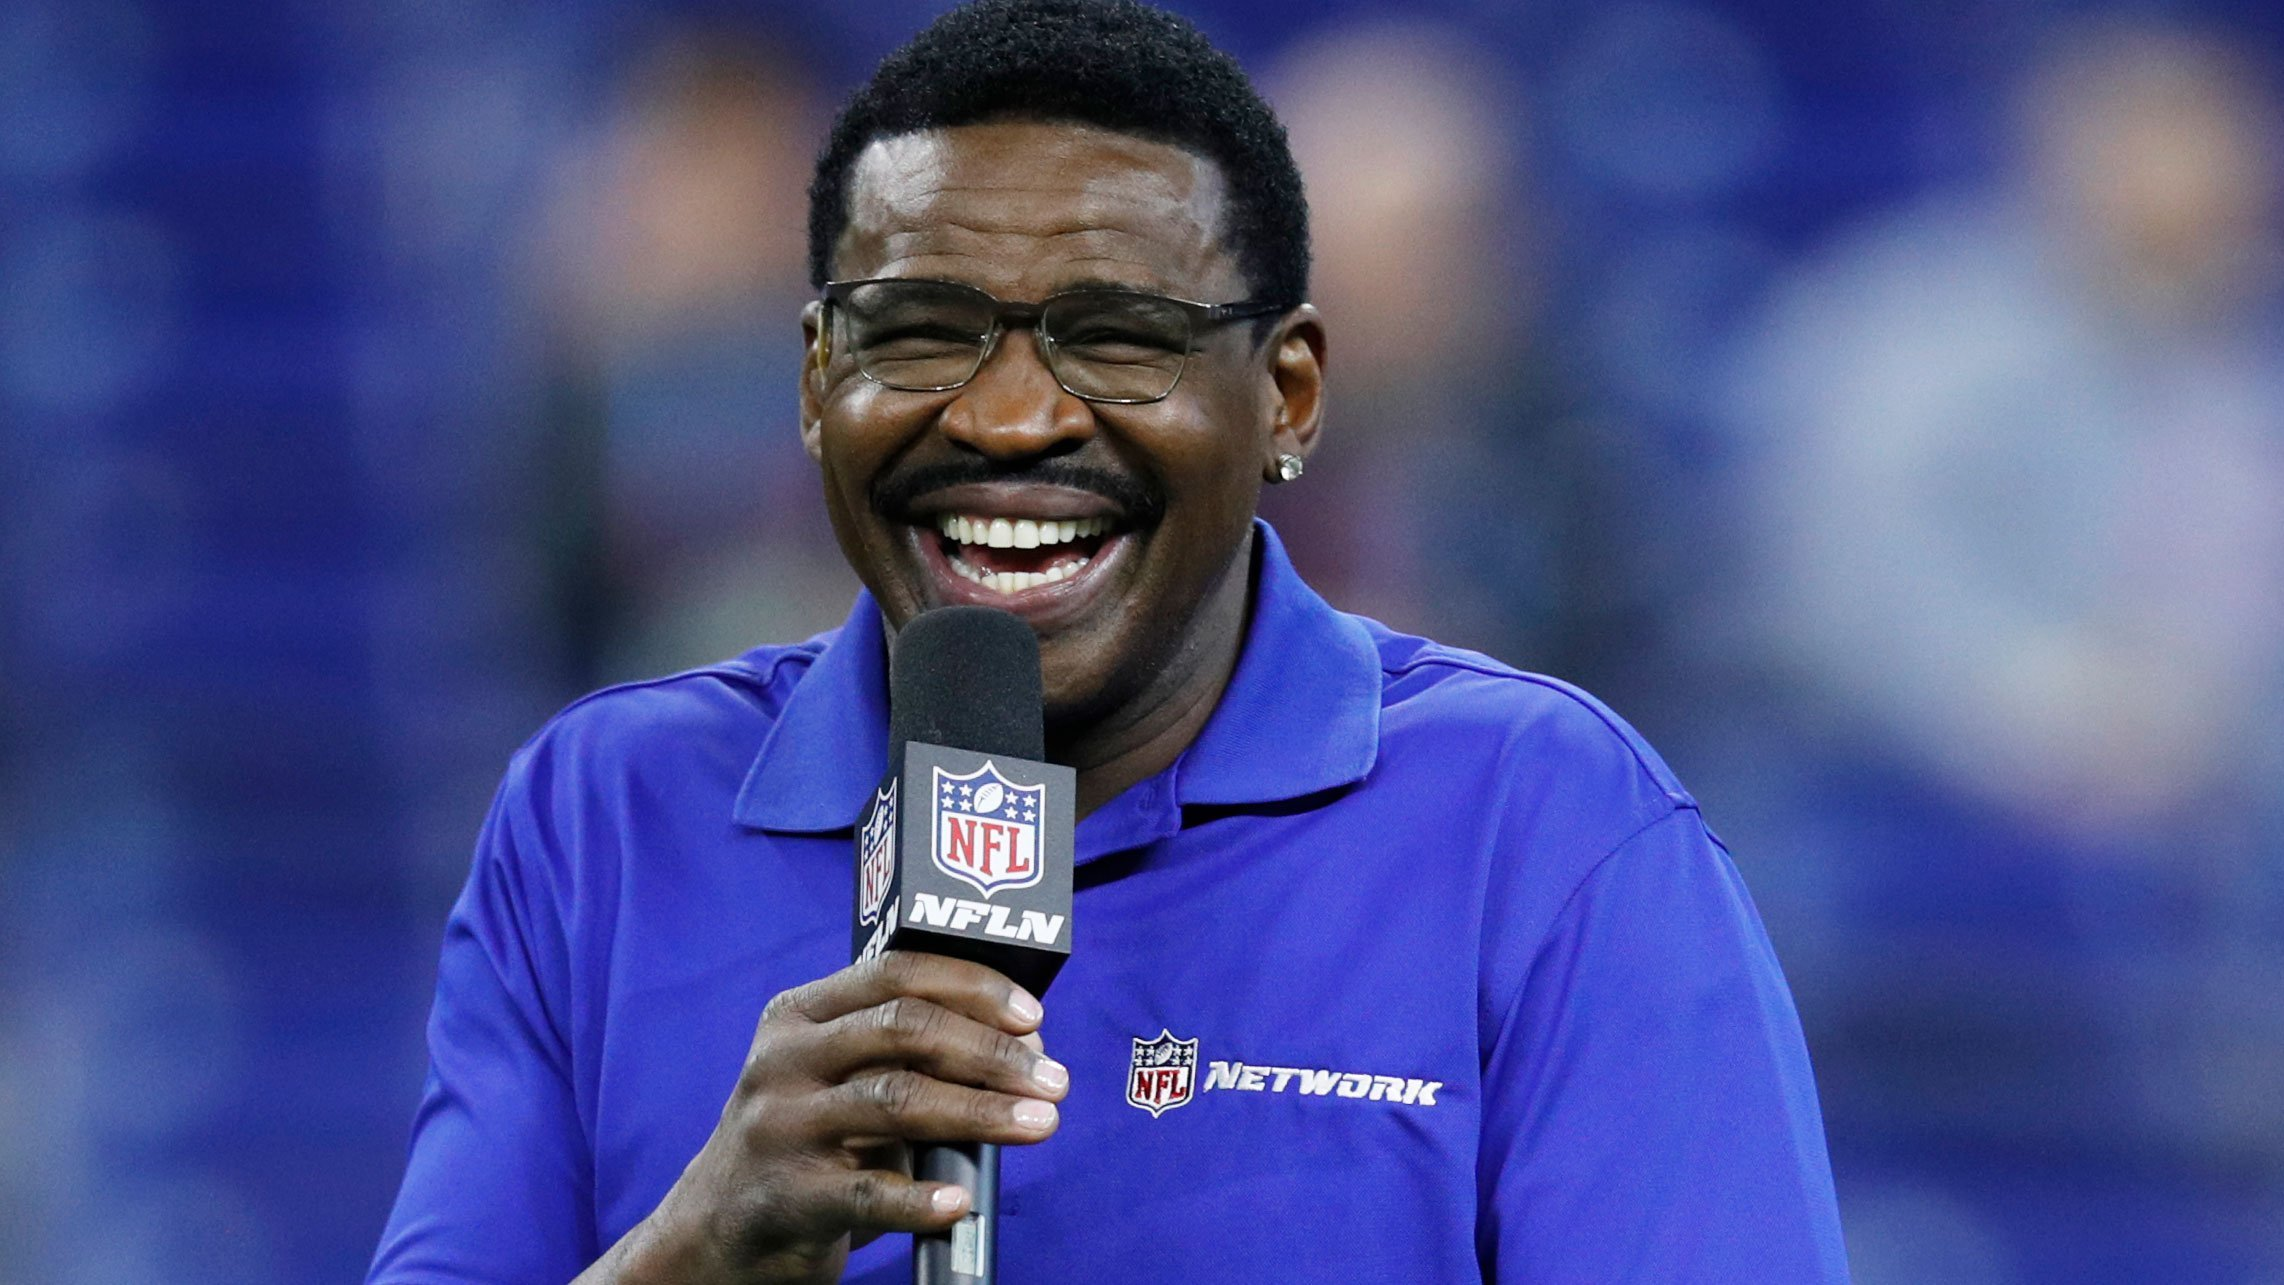 Not hyped for the return of college football? Michael Irvin's epic speech should do the trick